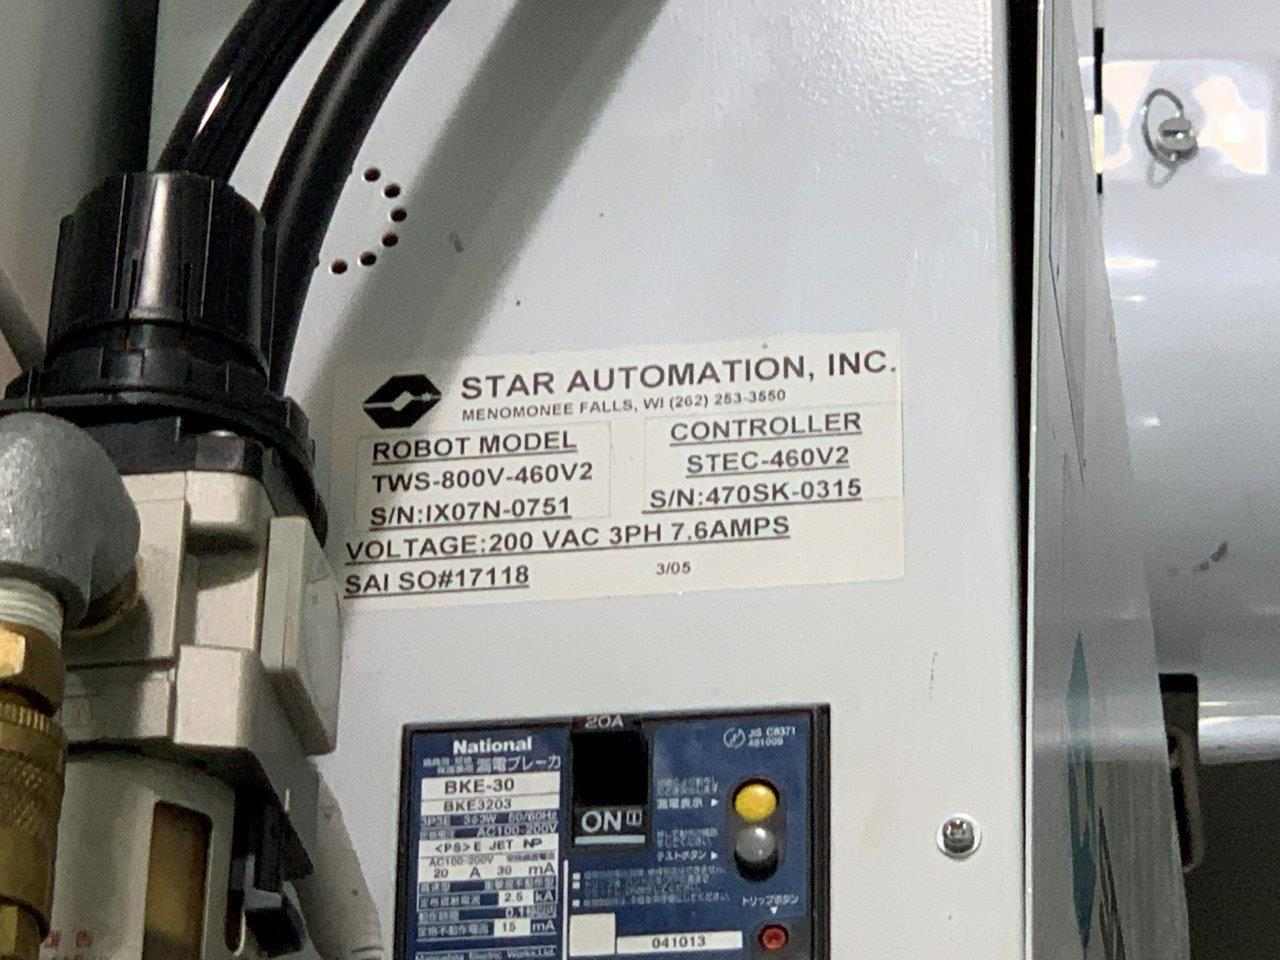 Star Automation Used TWS-800V-460V2 Full Servo Robot, 80-300 US ton, Yr. 2005